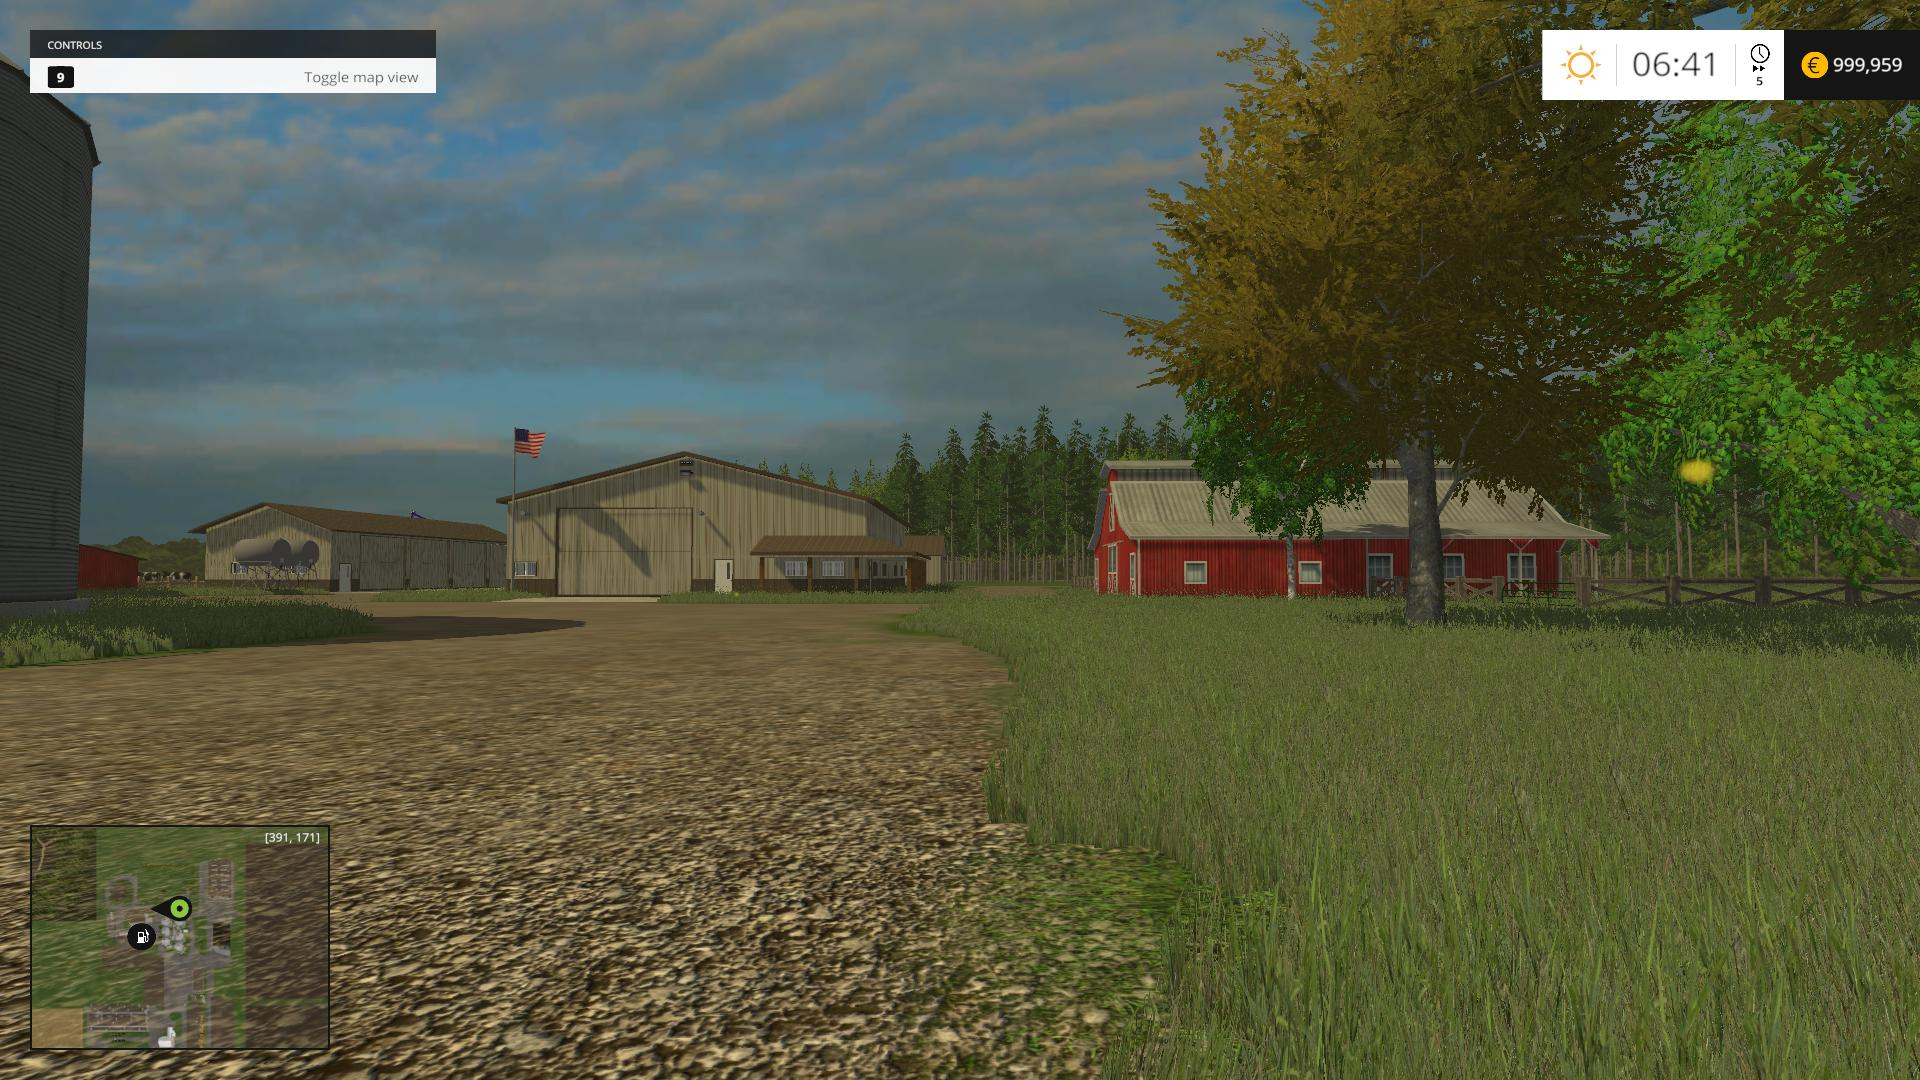 FEATHERVILLE MAP V1 FEATHERVILLE MAP V1